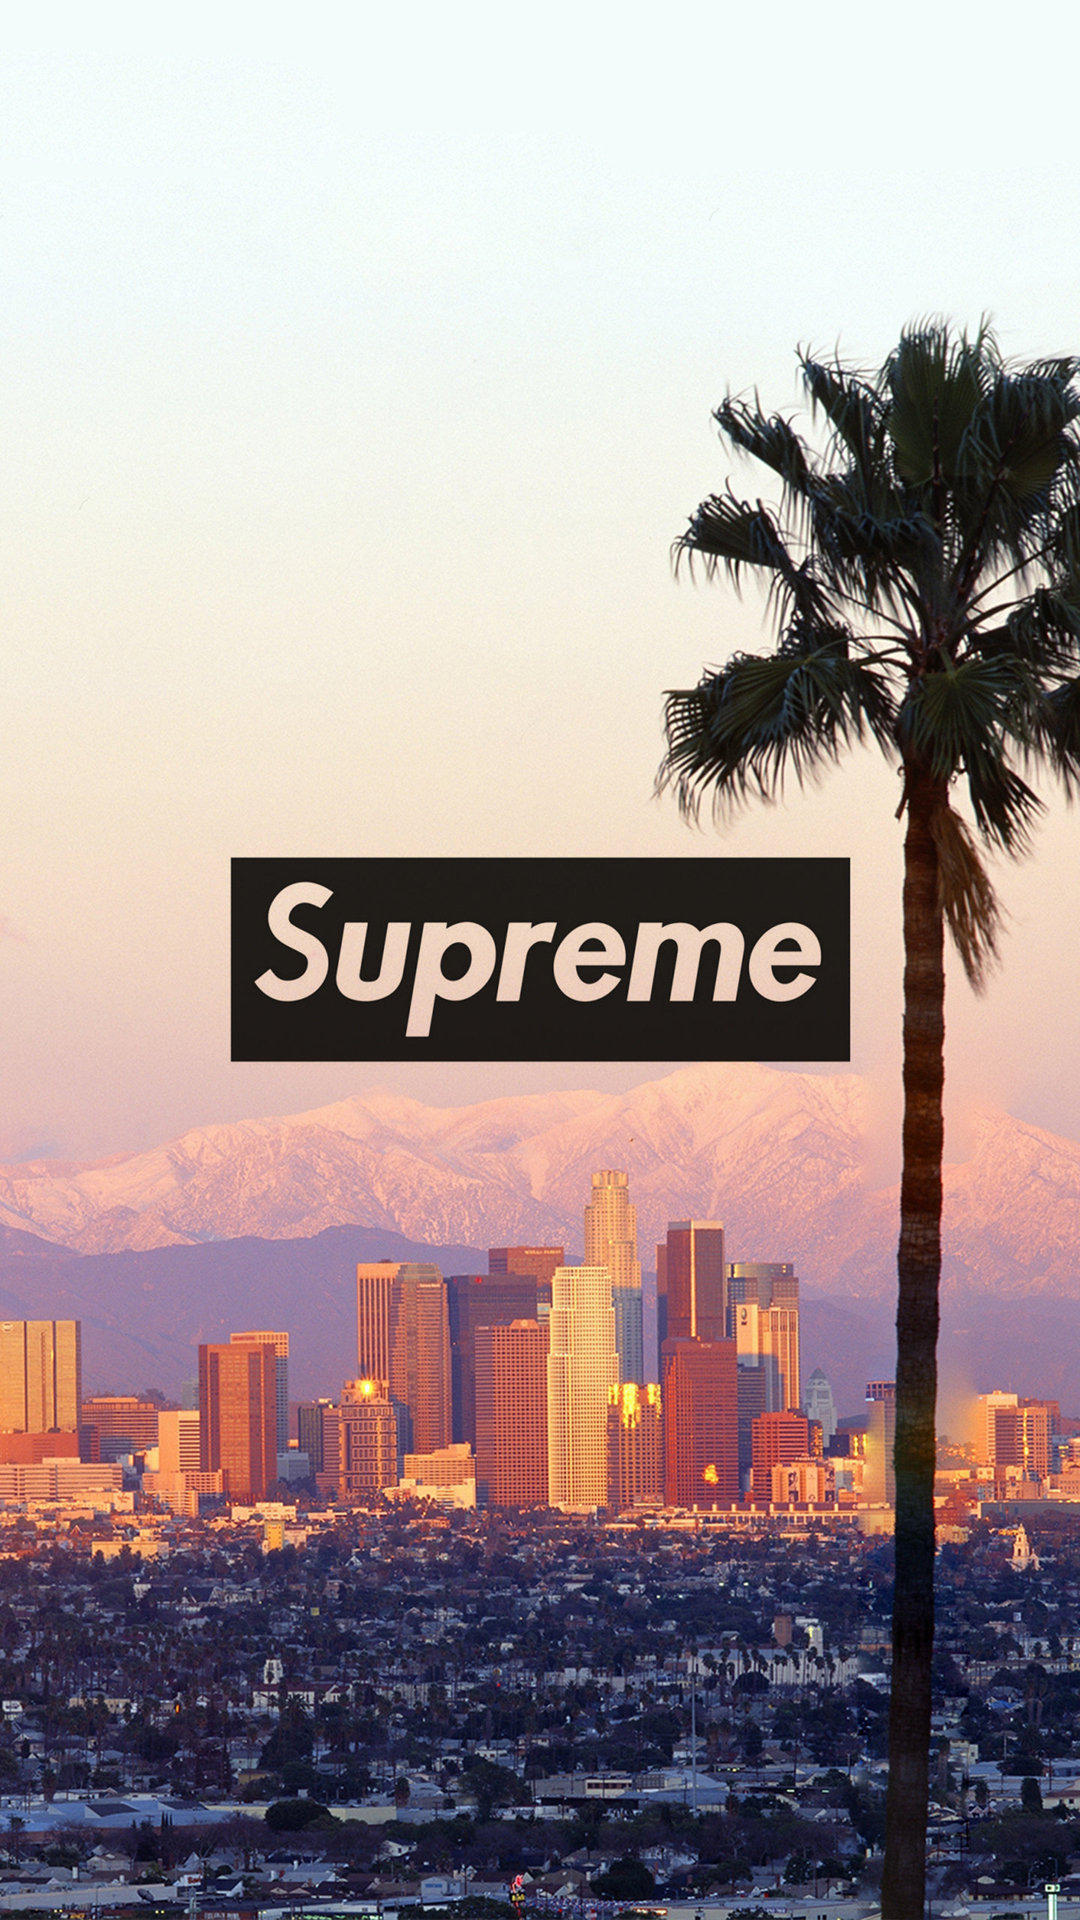 Free download Supreme Wallpapers Download Supreme HD Wallpapers 1080x1920 for your Desktop ...